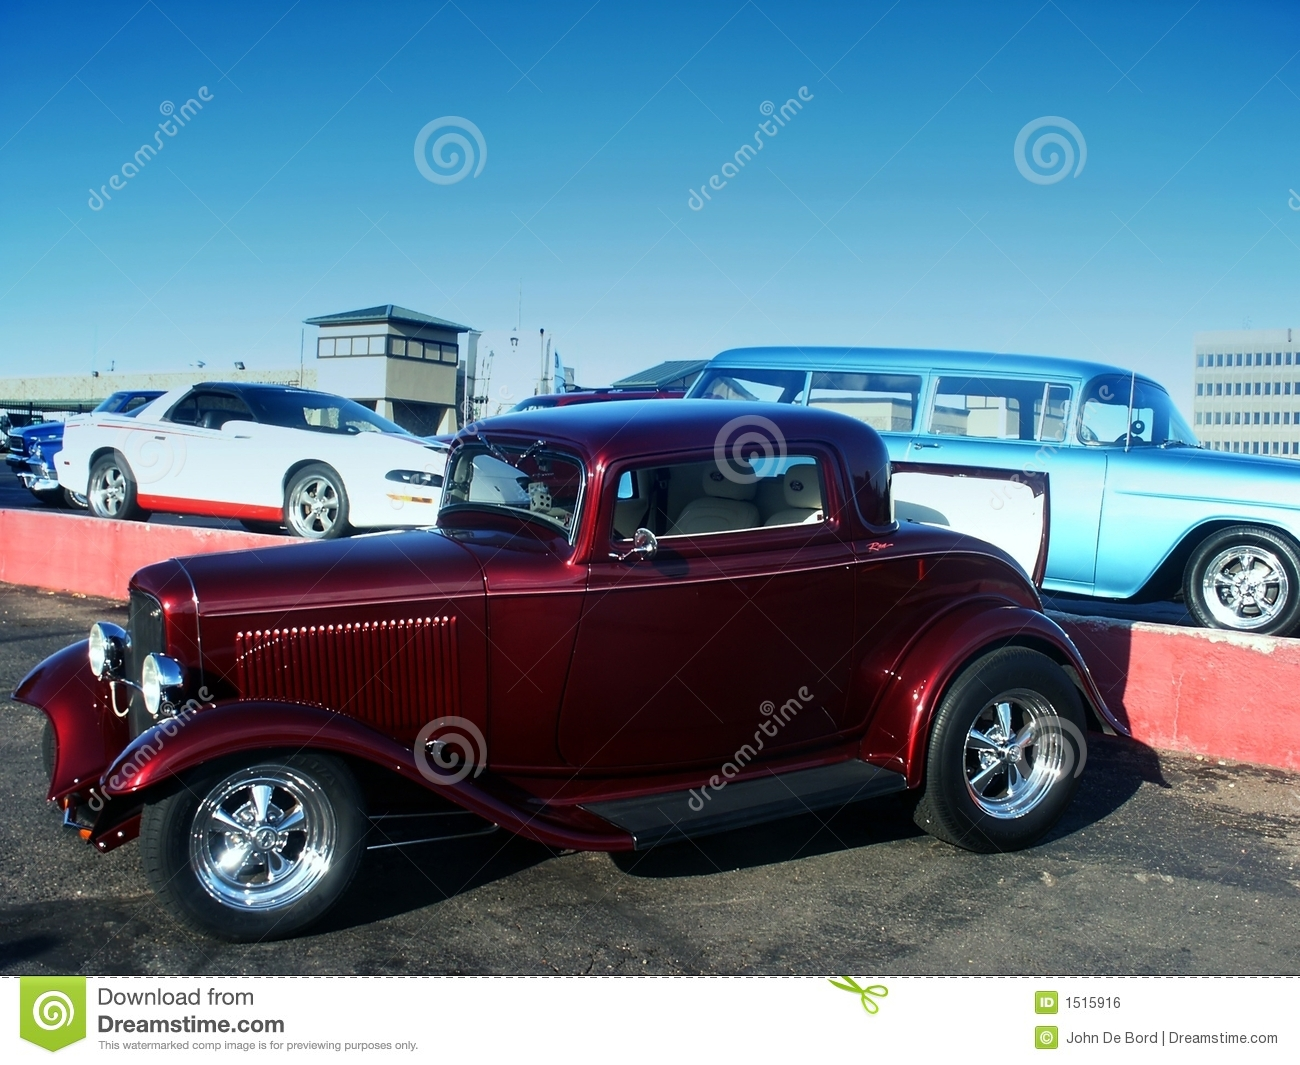 Classic Red Hot Rod At A Car Show Stock Photo - Image of show ...